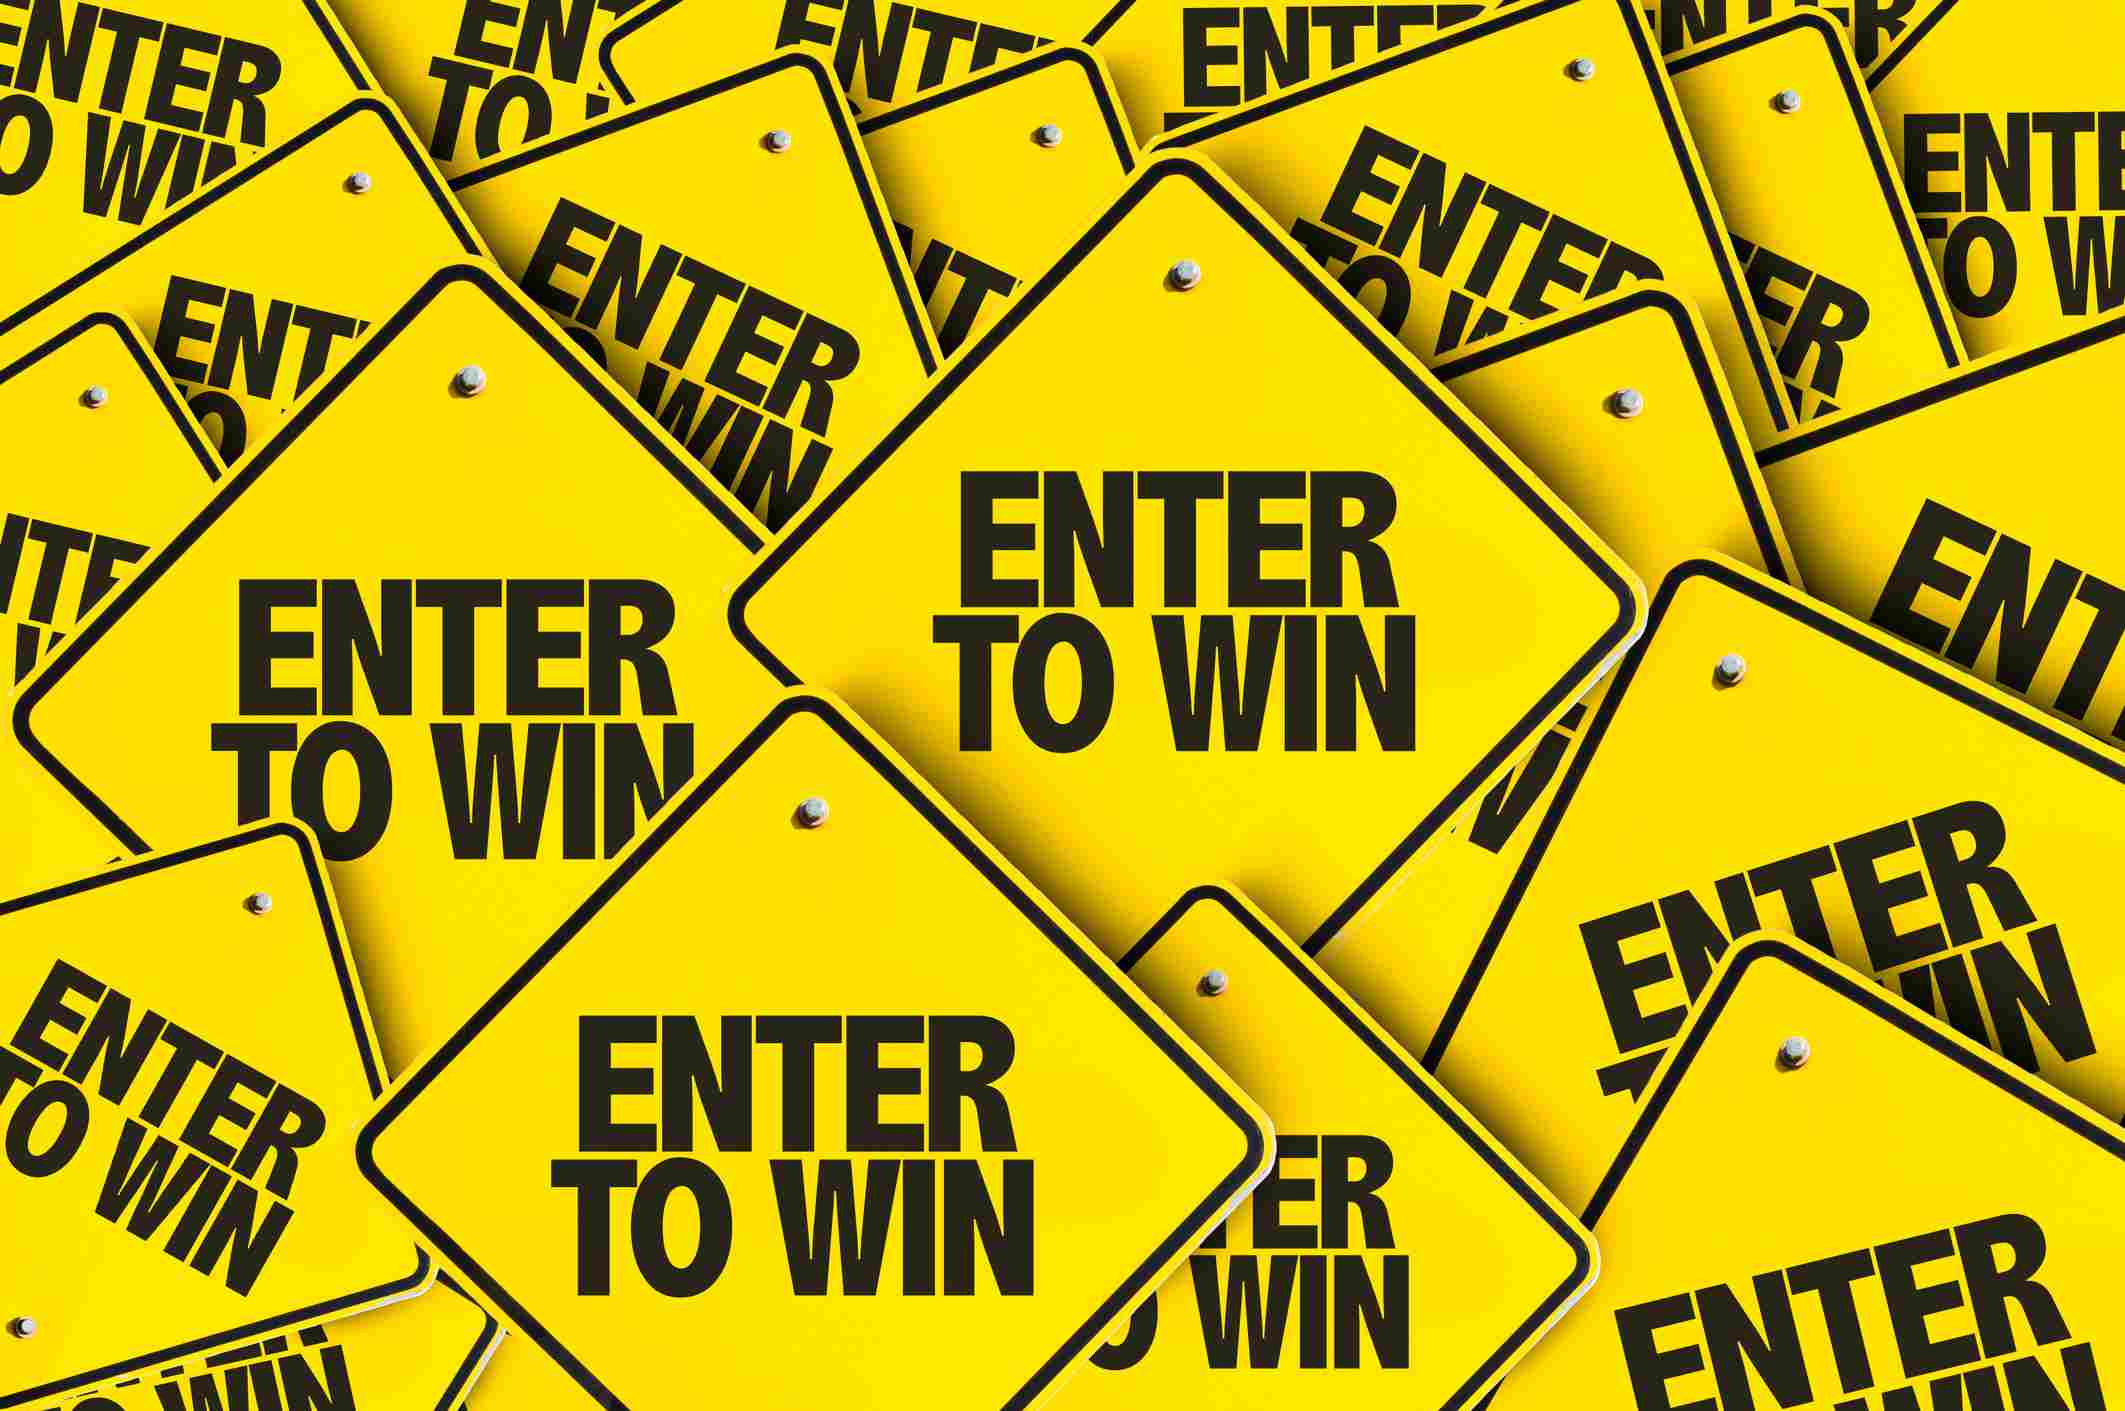 Faster Sweepstakes Entry: Win Prizes in Half the Time